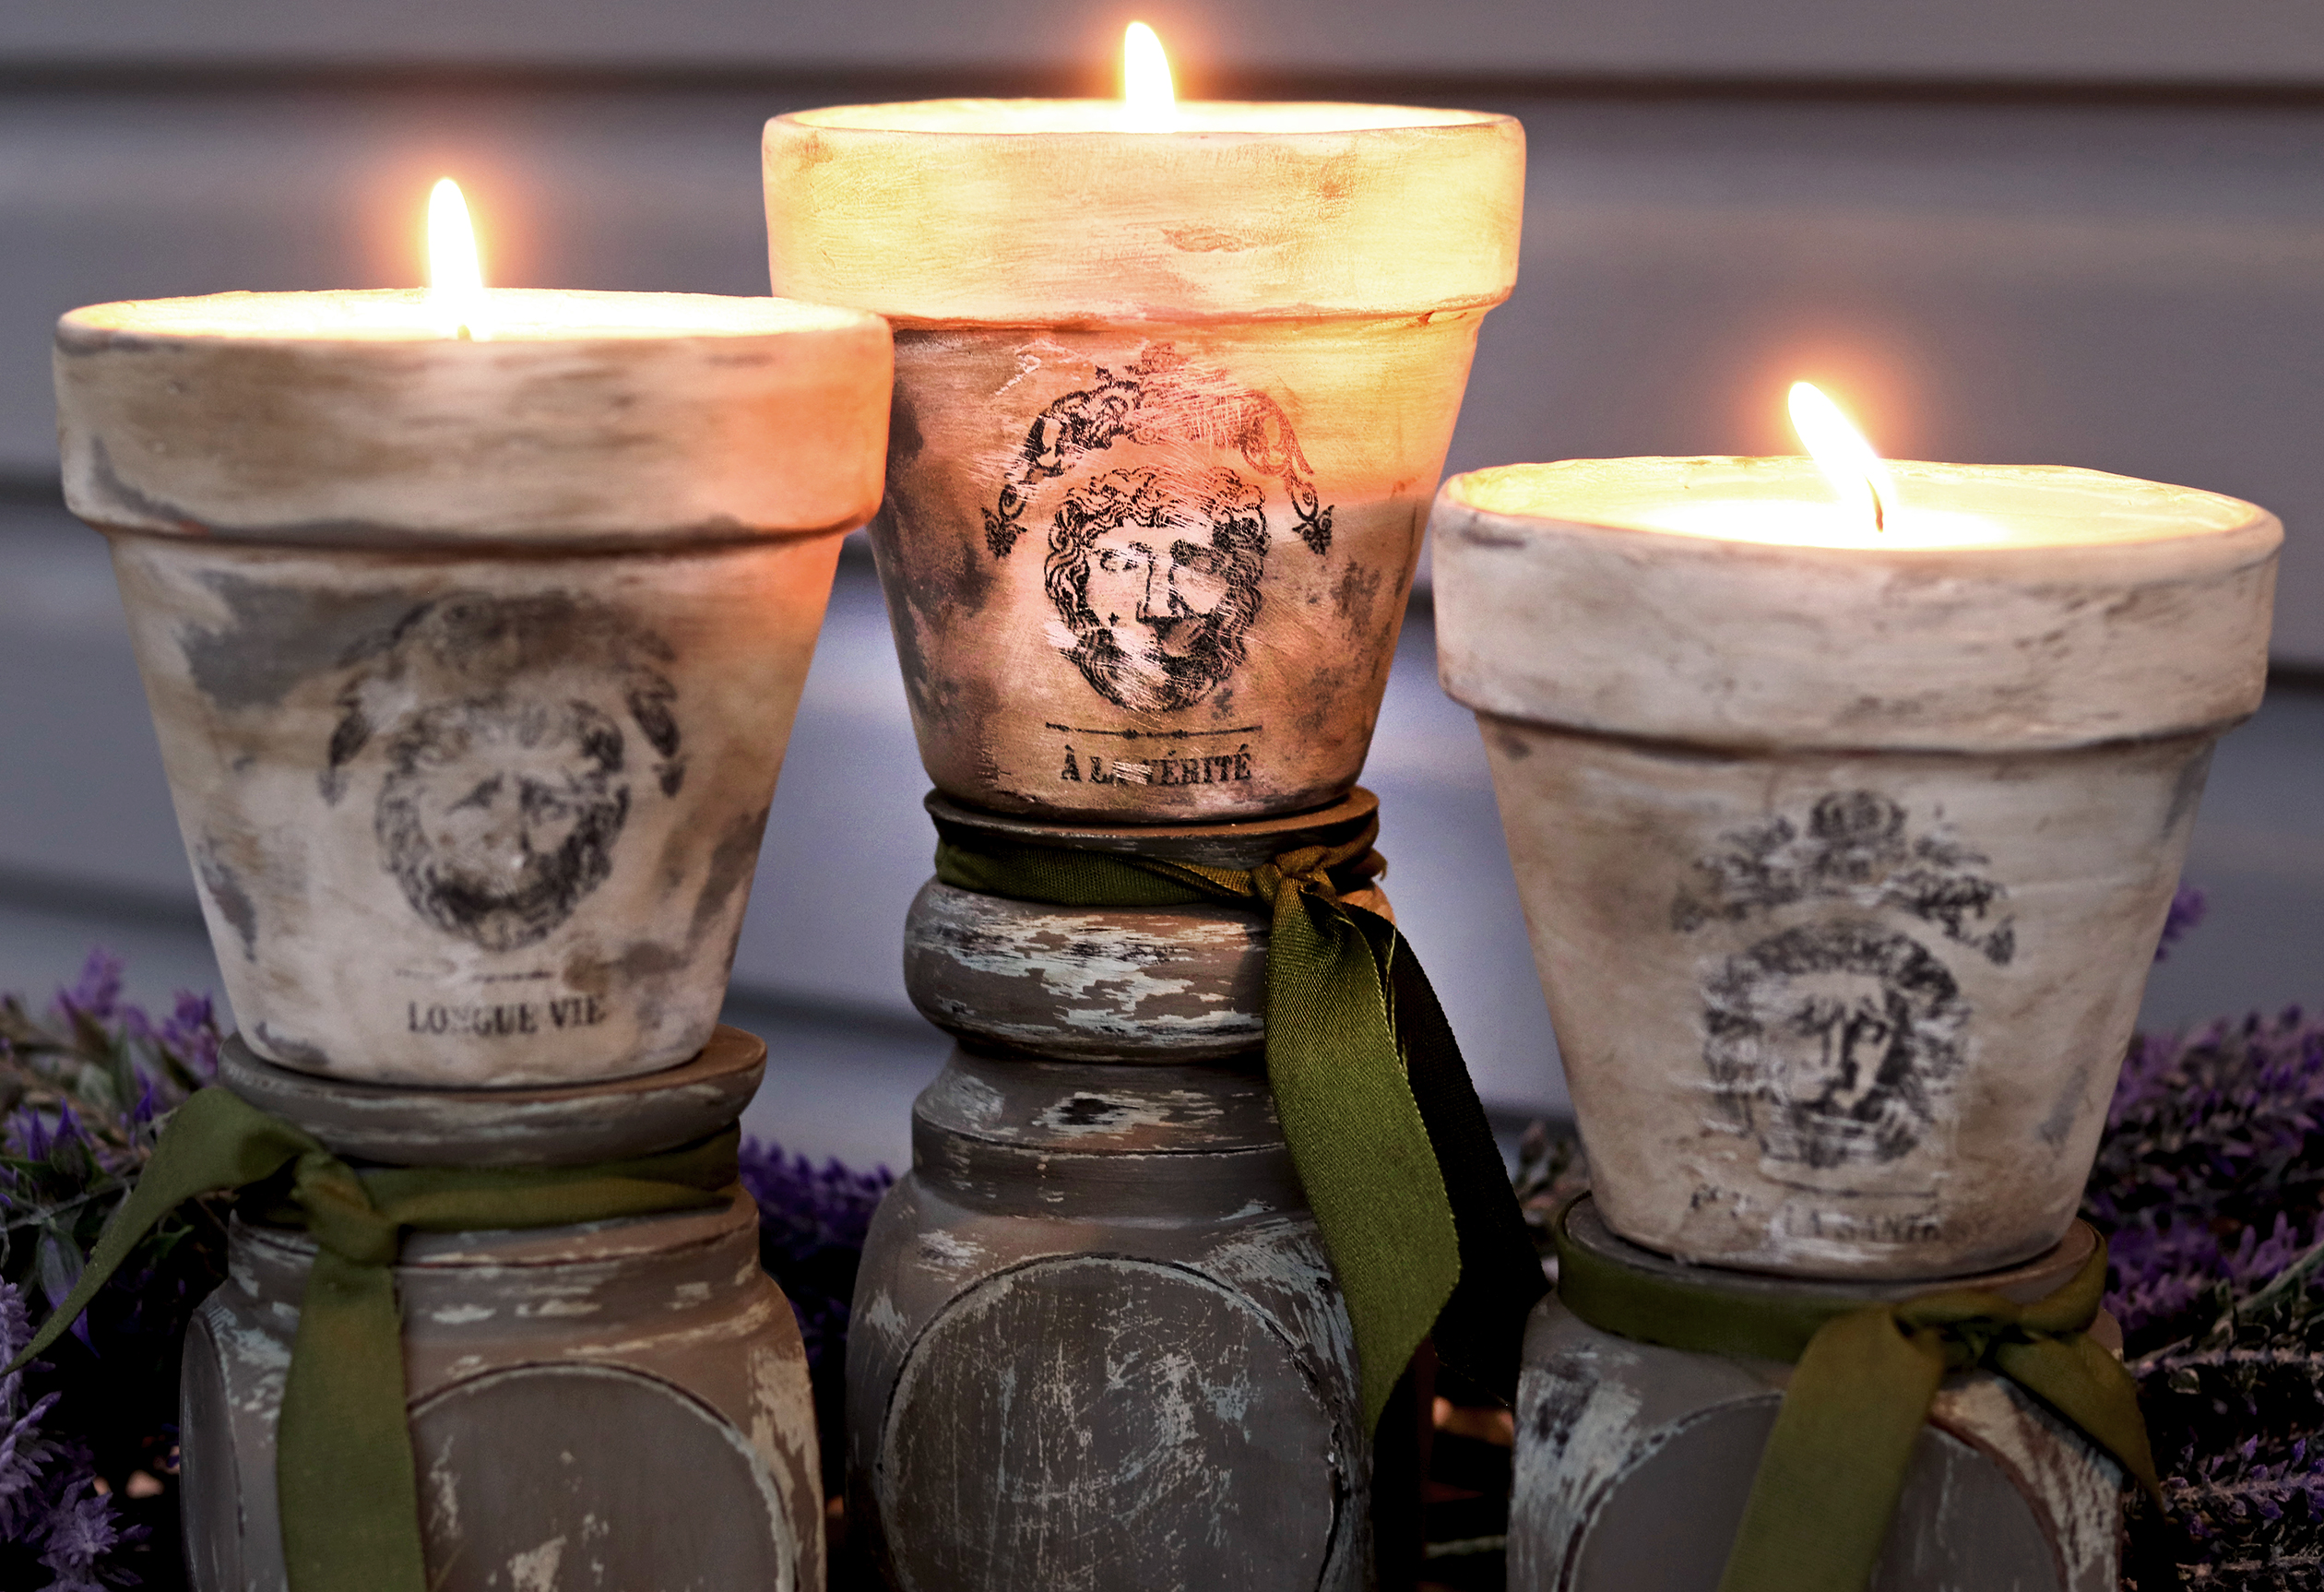 Boroughfare Home DIY Old World Inspired Candles Lit Up